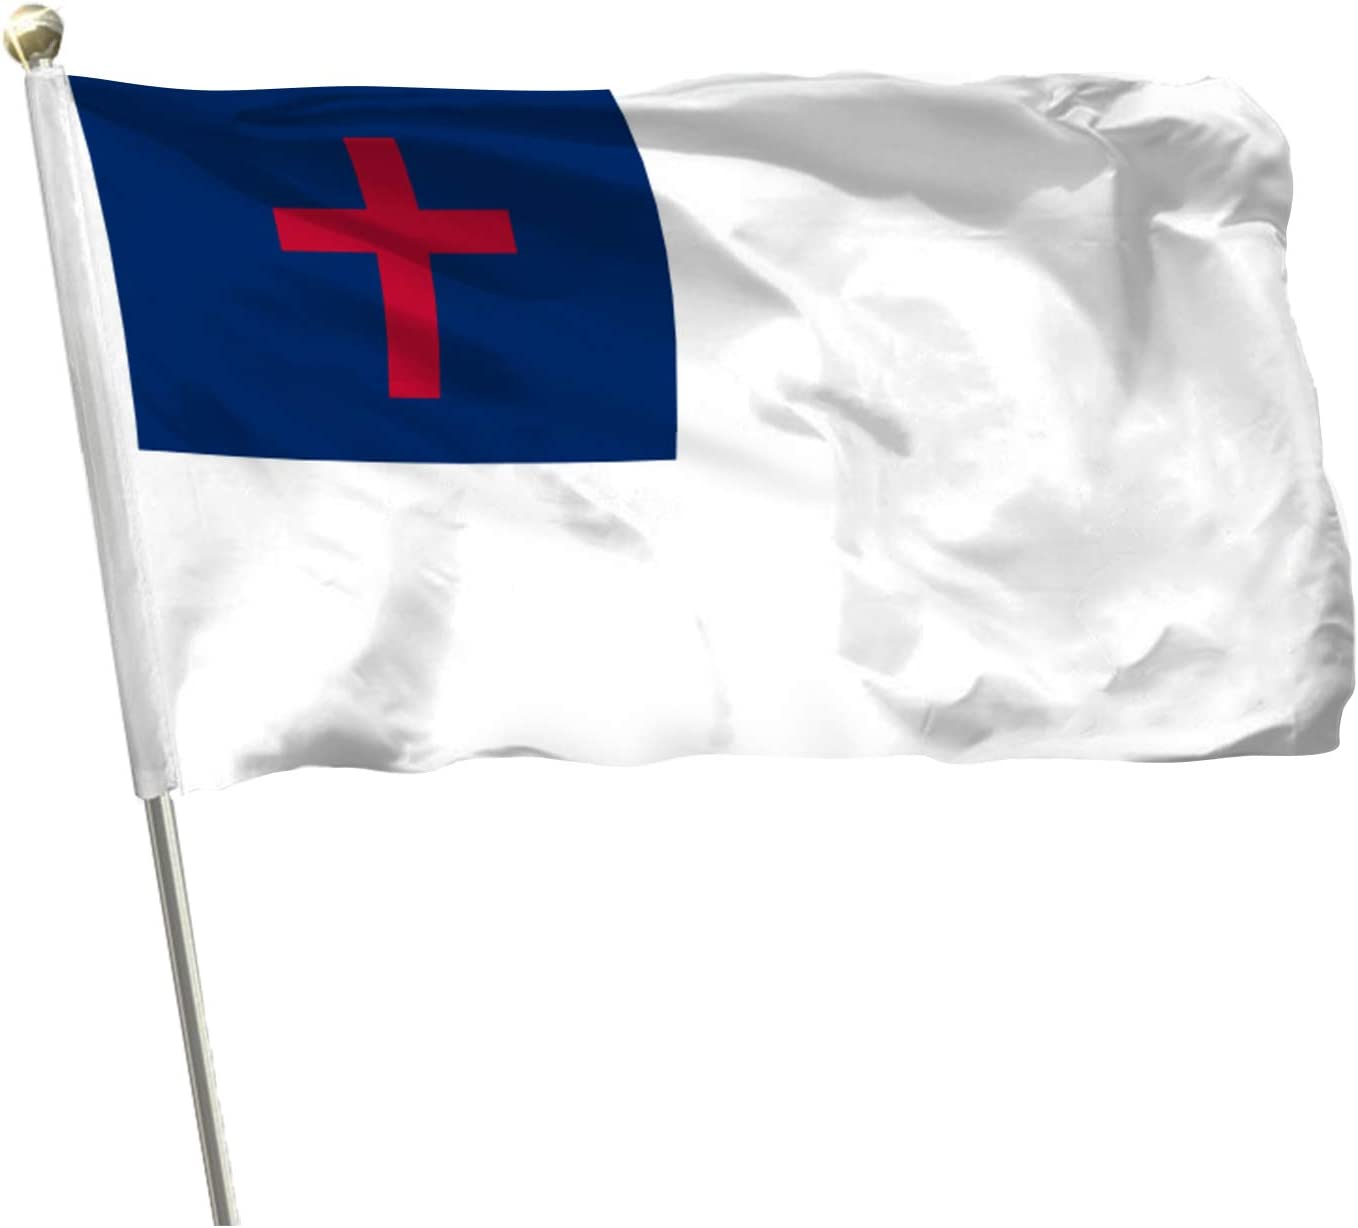 MOFAN Christian Flag Church Polyester Durable and Vivid Bright Color Christian Cross Religious Flags with 2 Solid Brass Grommets Indoor/Outdoor Home Garden Decoration 3x5ft